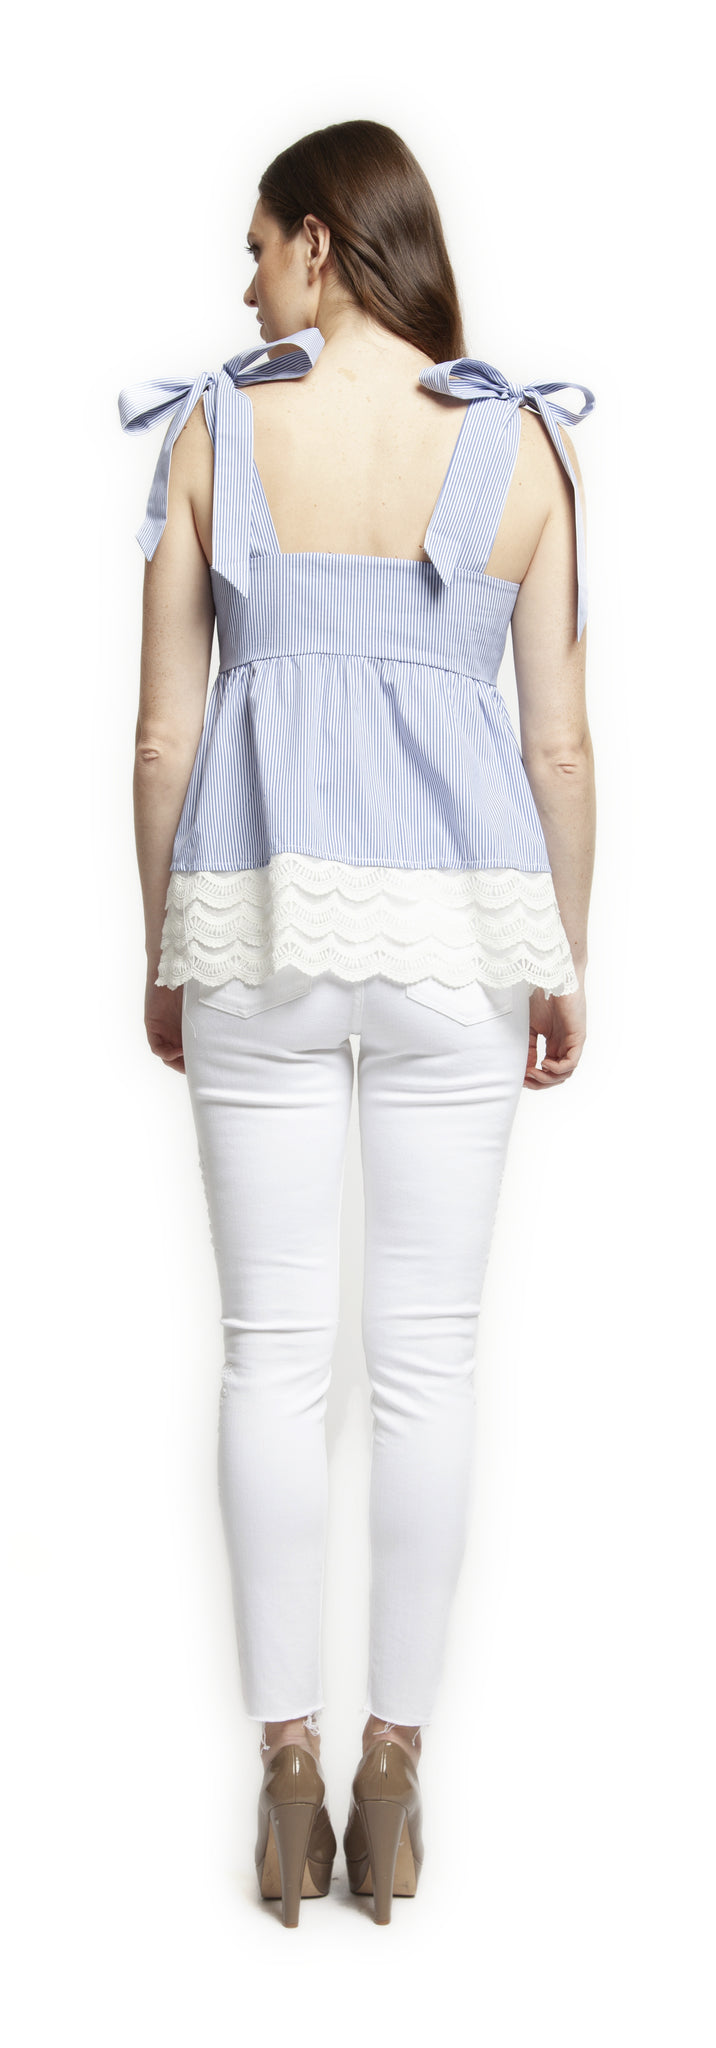 Embroidered High Rise White Skinny Jeans